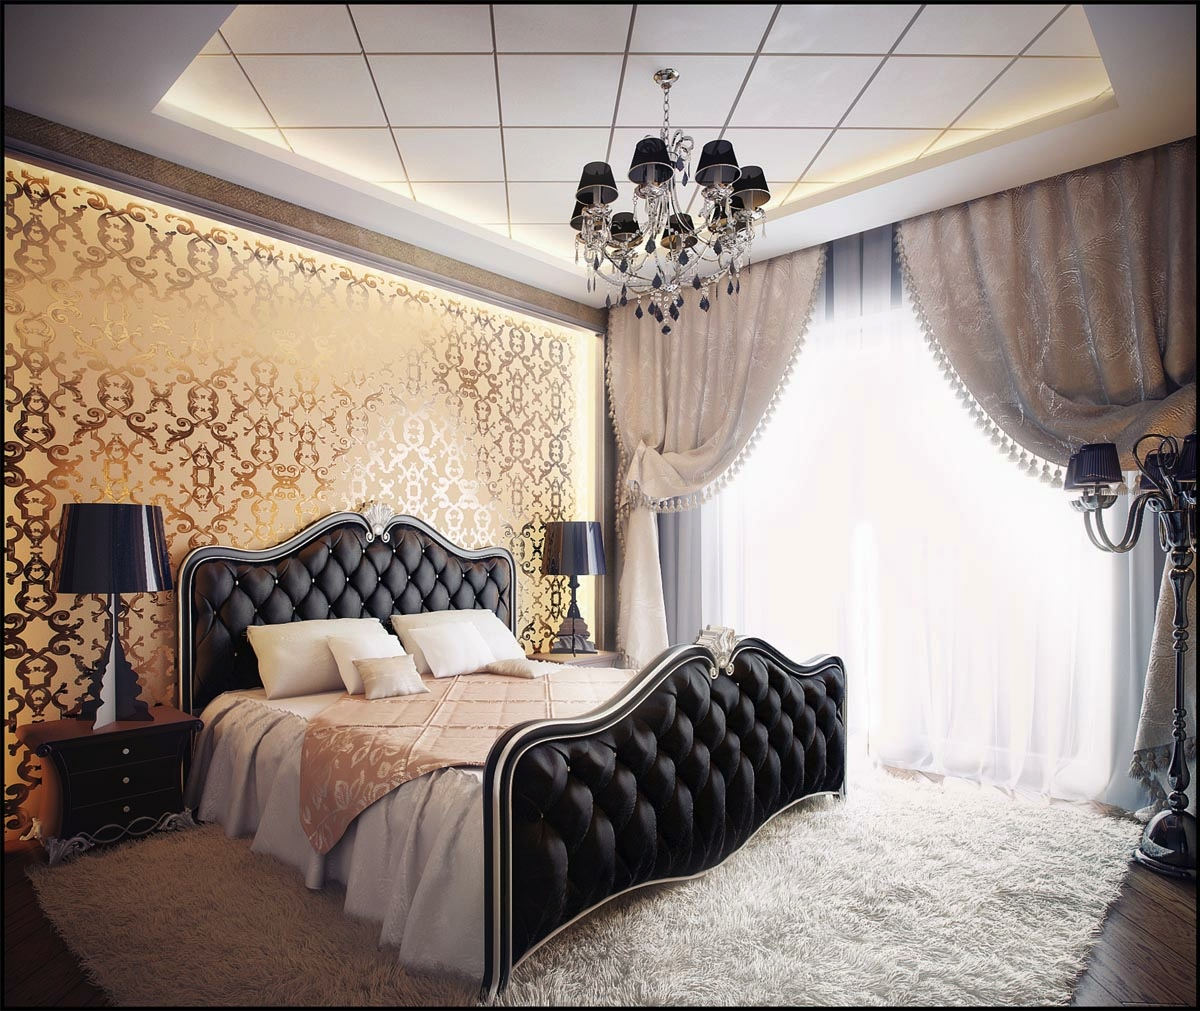 Traditional Elegant Bedroom: Classic And Dramatic: Black Gold Bedroom Design